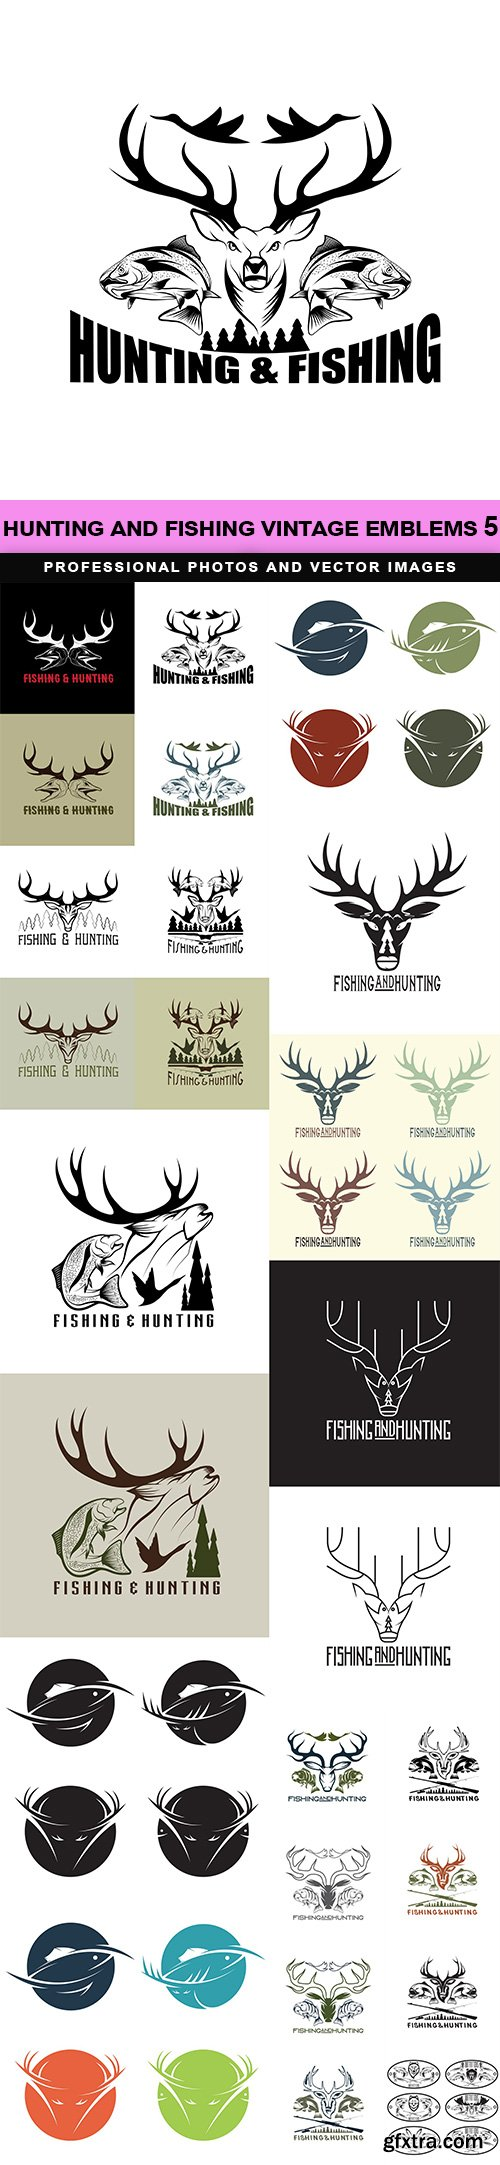 Hunting and fishing vintage emblems 5